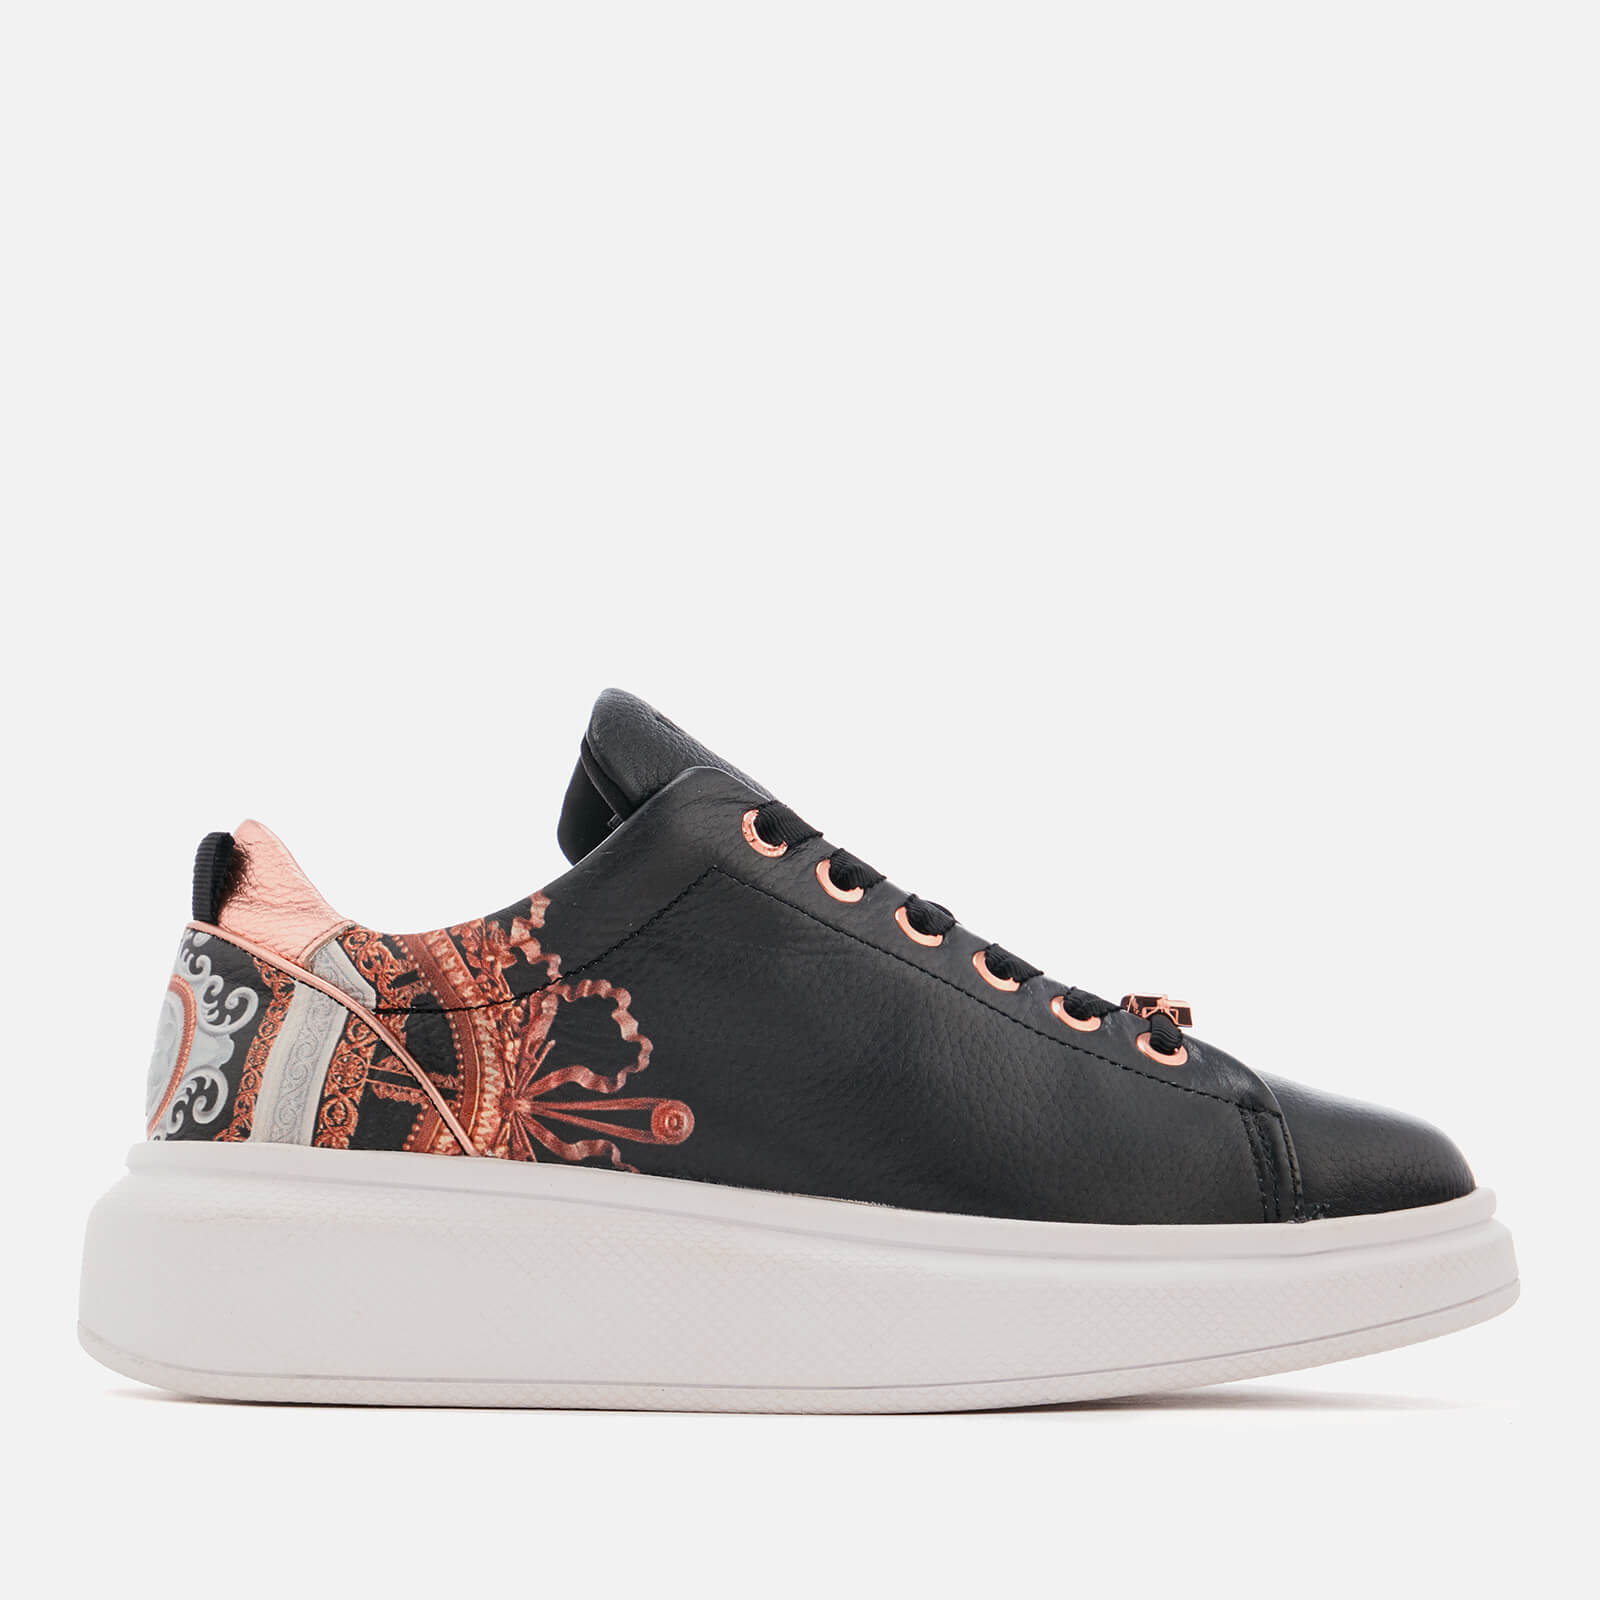 768ae0a1955c Ted Baker Women s Ailbe Leather Platform Trainers - Black Versailles ...